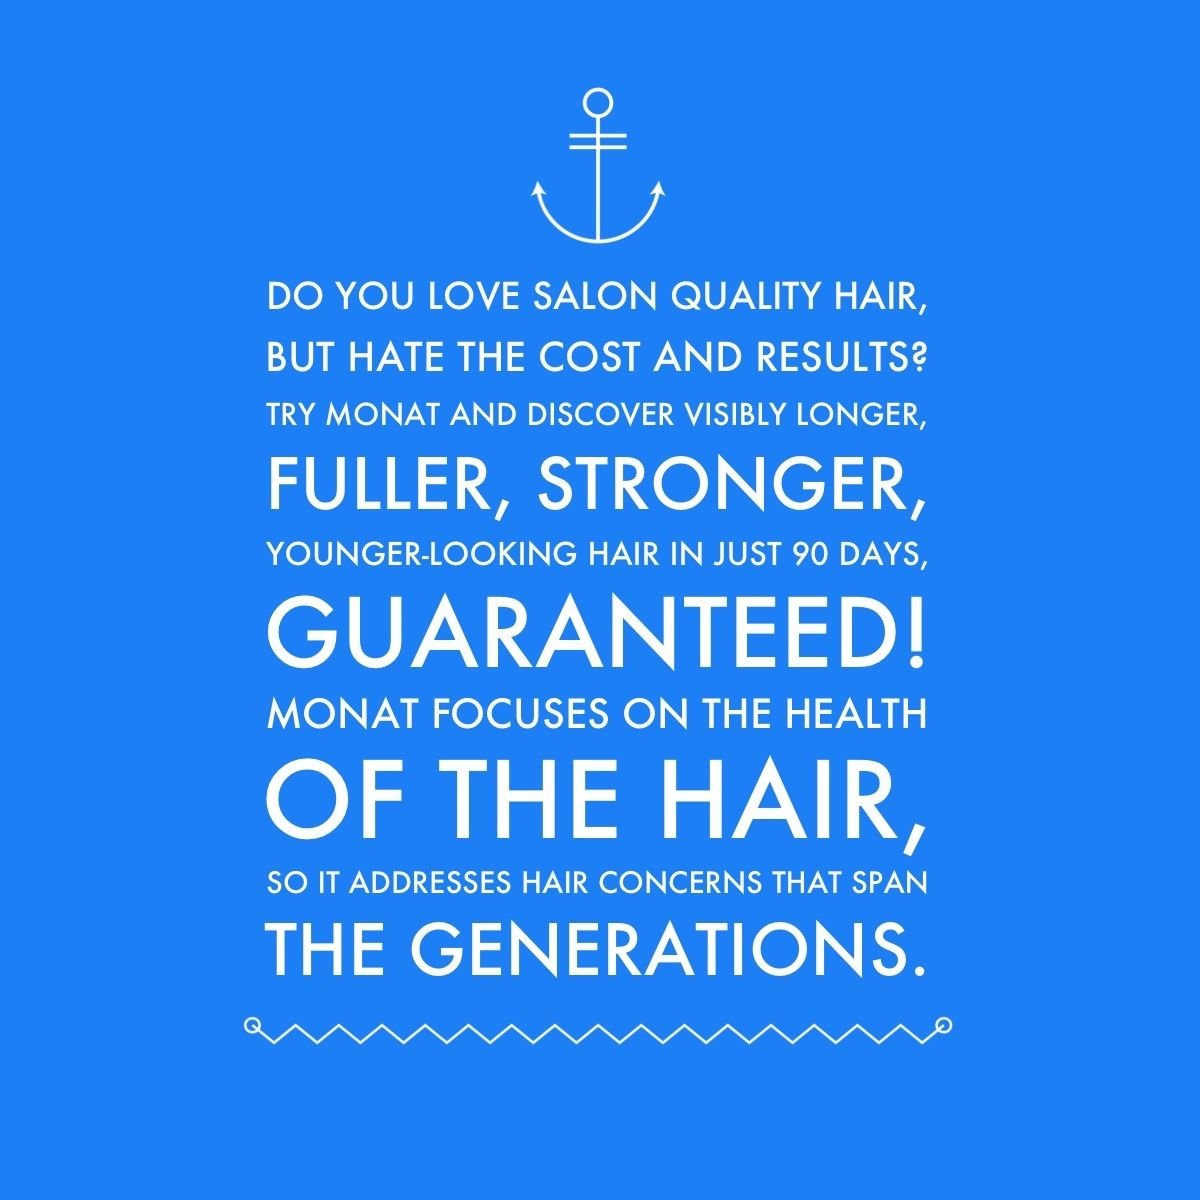 Start loving your hair with Monat! Monat Clinical